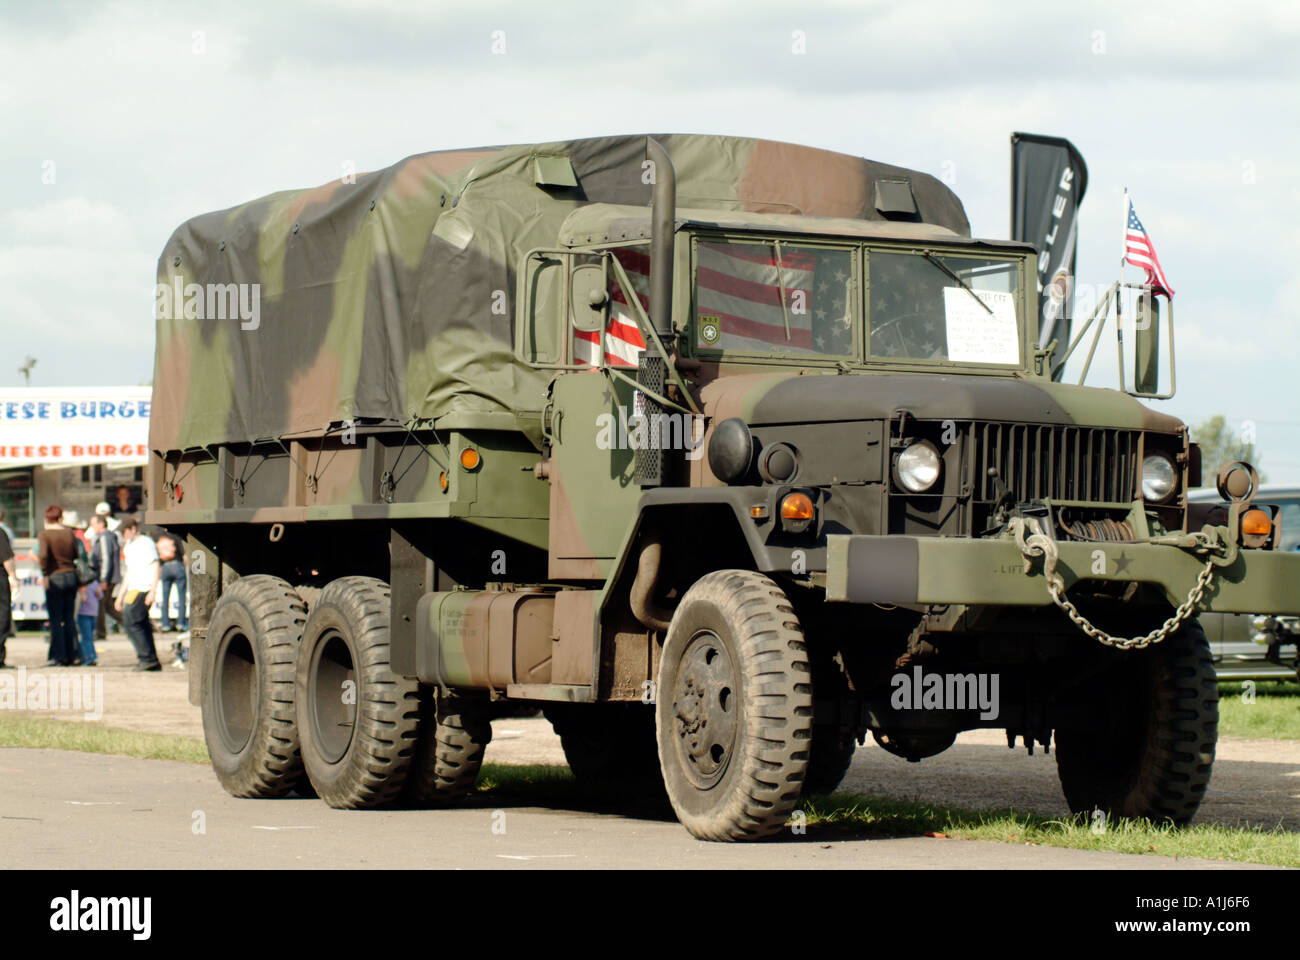 american miltary vechical camoflage camo world war 1 one two 2 truck car lorry transport diesel - Stock Image